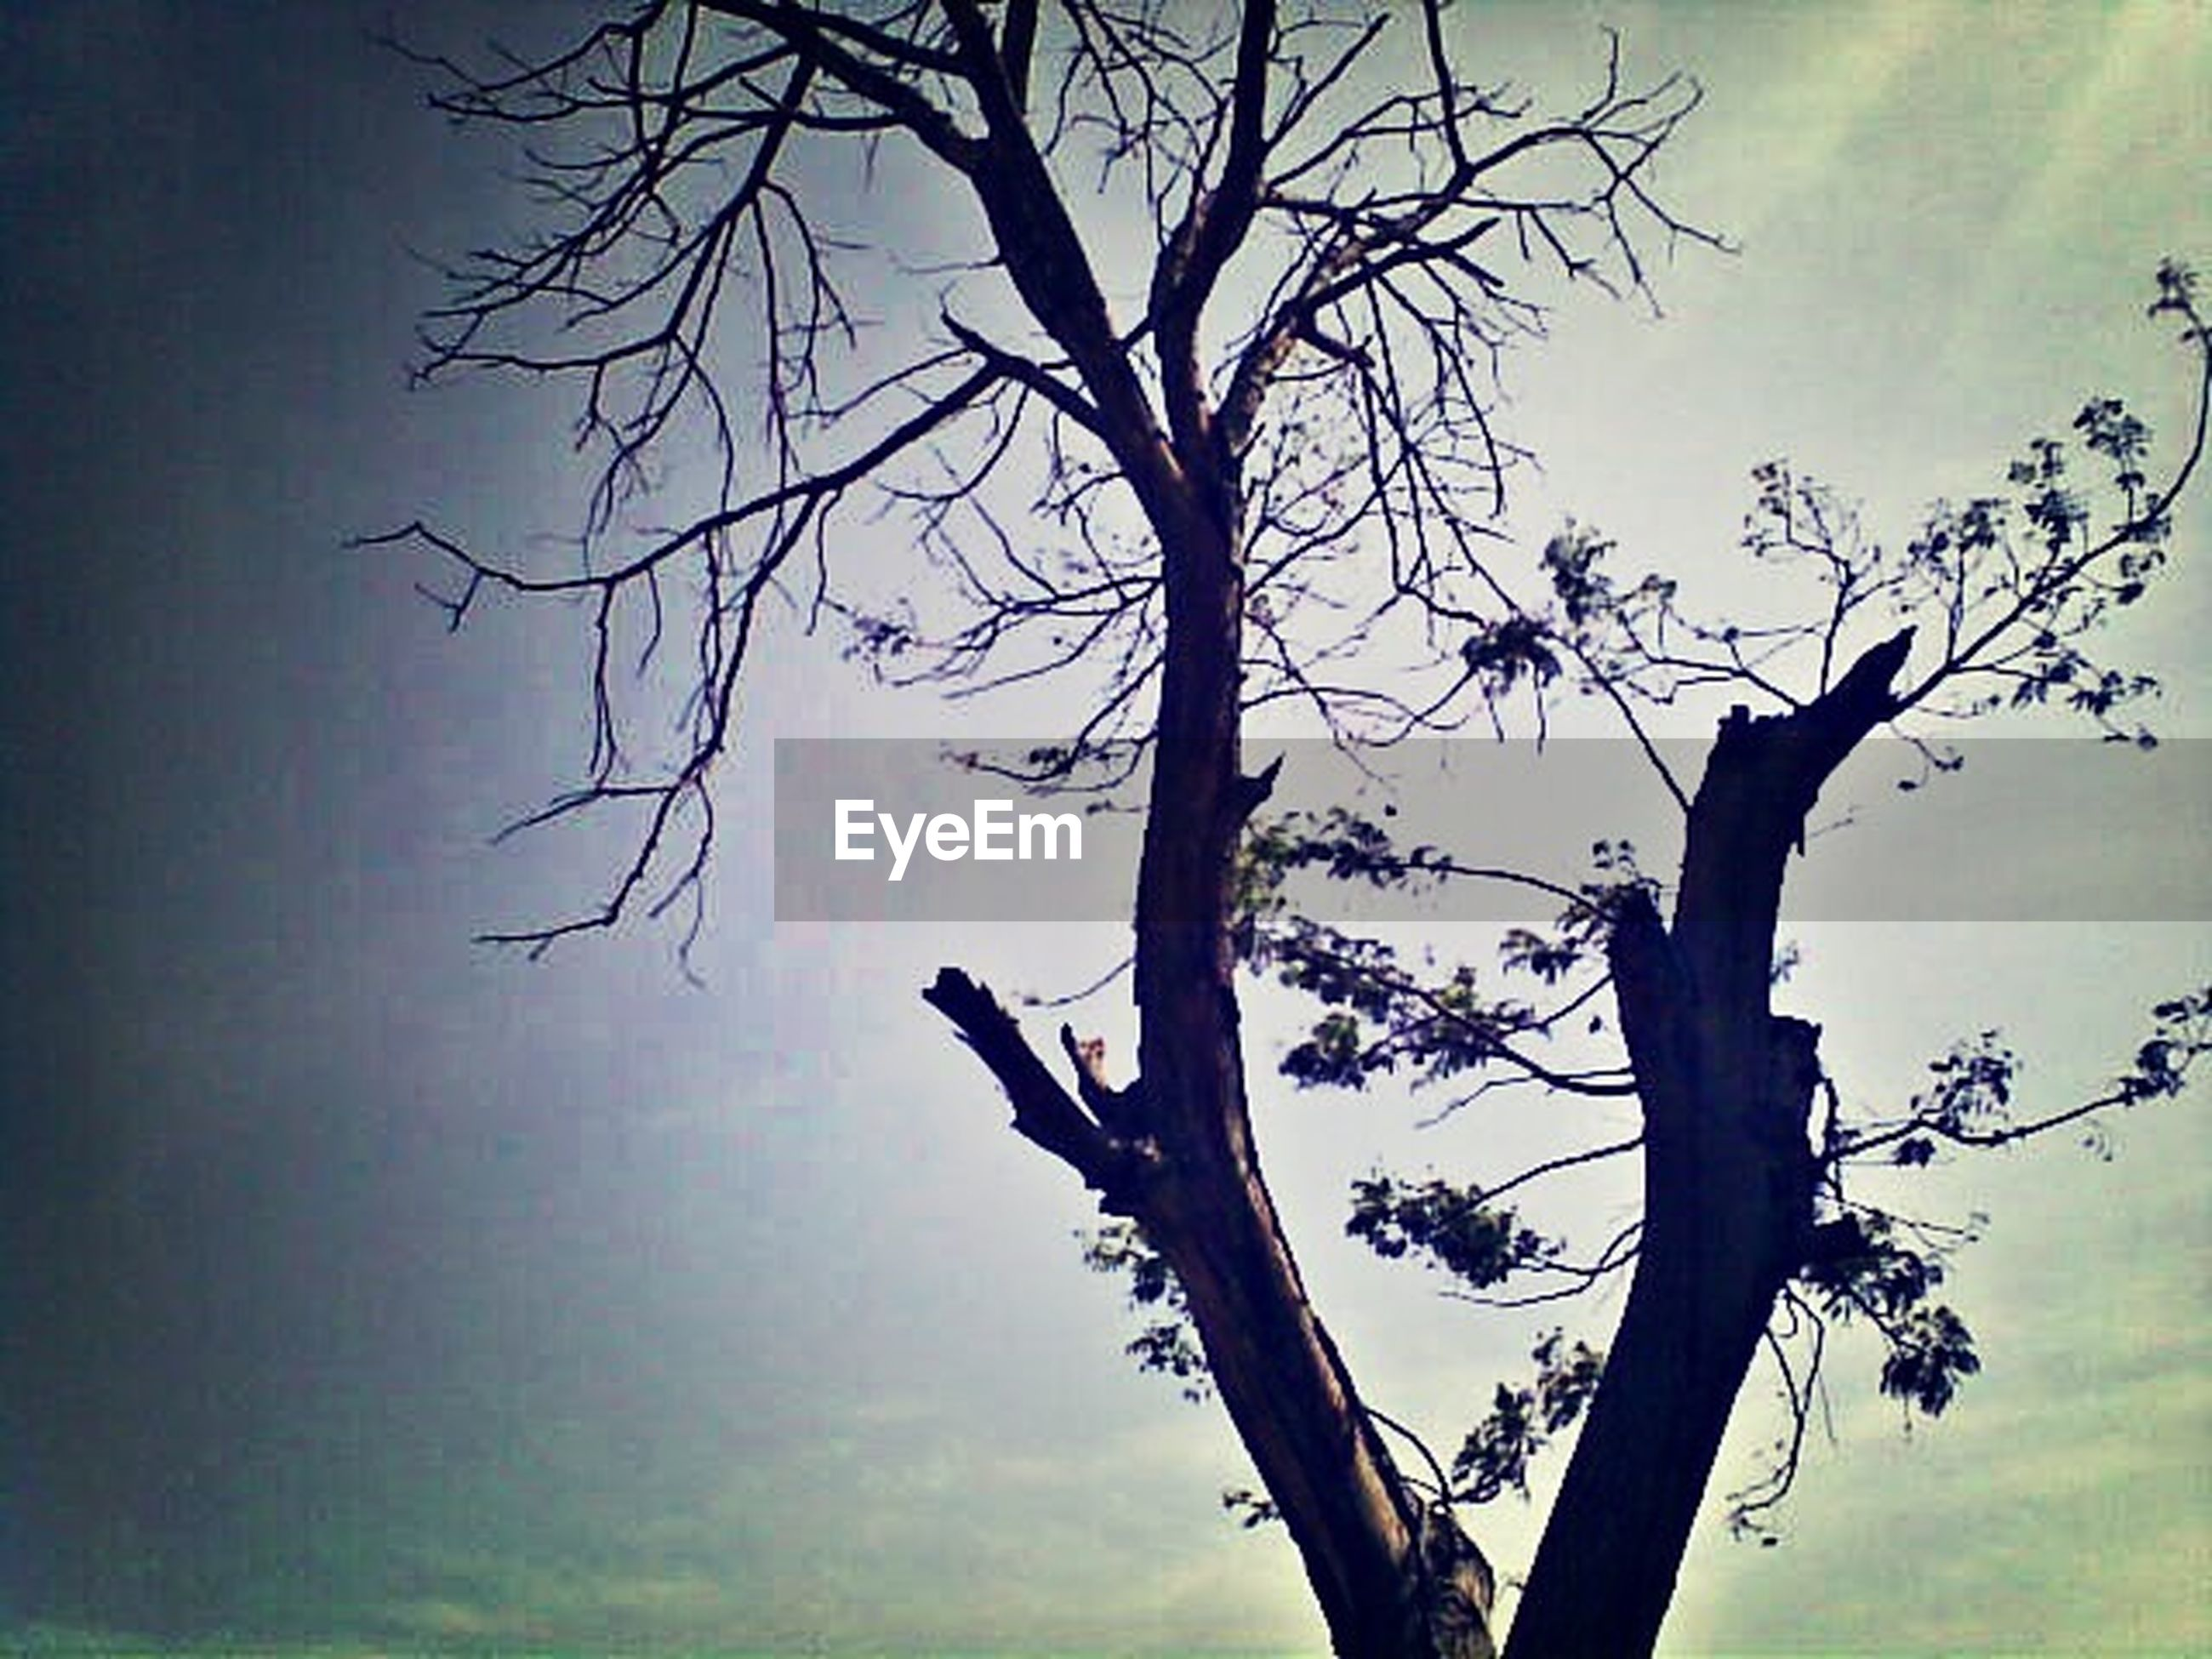 bare tree, branch, tree, sky, tranquility, nature, tree trunk, low angle view, dead plant, silhouette, beauty in nature, tranquil scene, scenics, growth, cloud - sky, outdoors, no people, dusk, dried plant, single tree